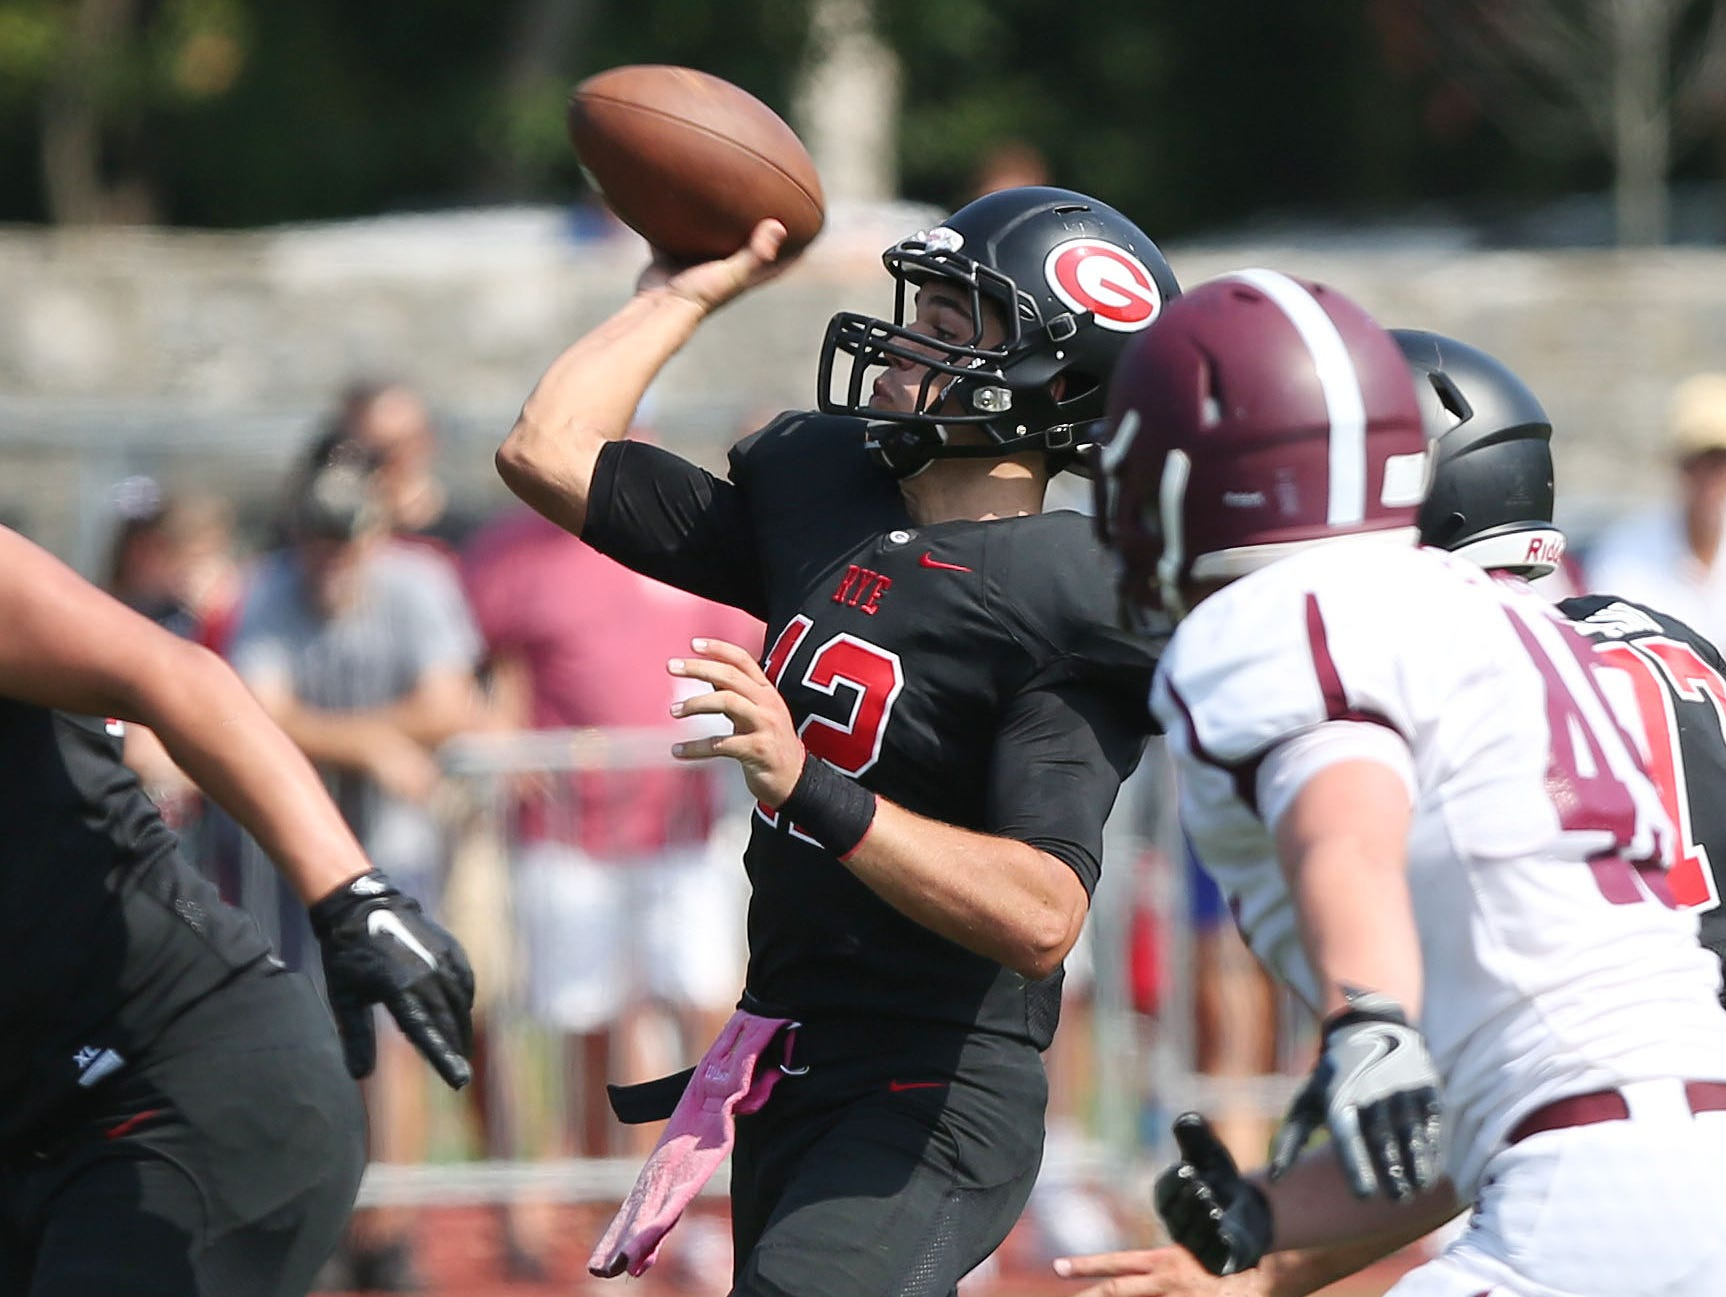 Rye QB T.J. Lavelle throws a pass to Matt Bruno for the Garnets' first touchdown of the game against Harrison during the annual rivalry game at Nugent Stadium at Rye High School on Saturday. Rye won the game 42-12.